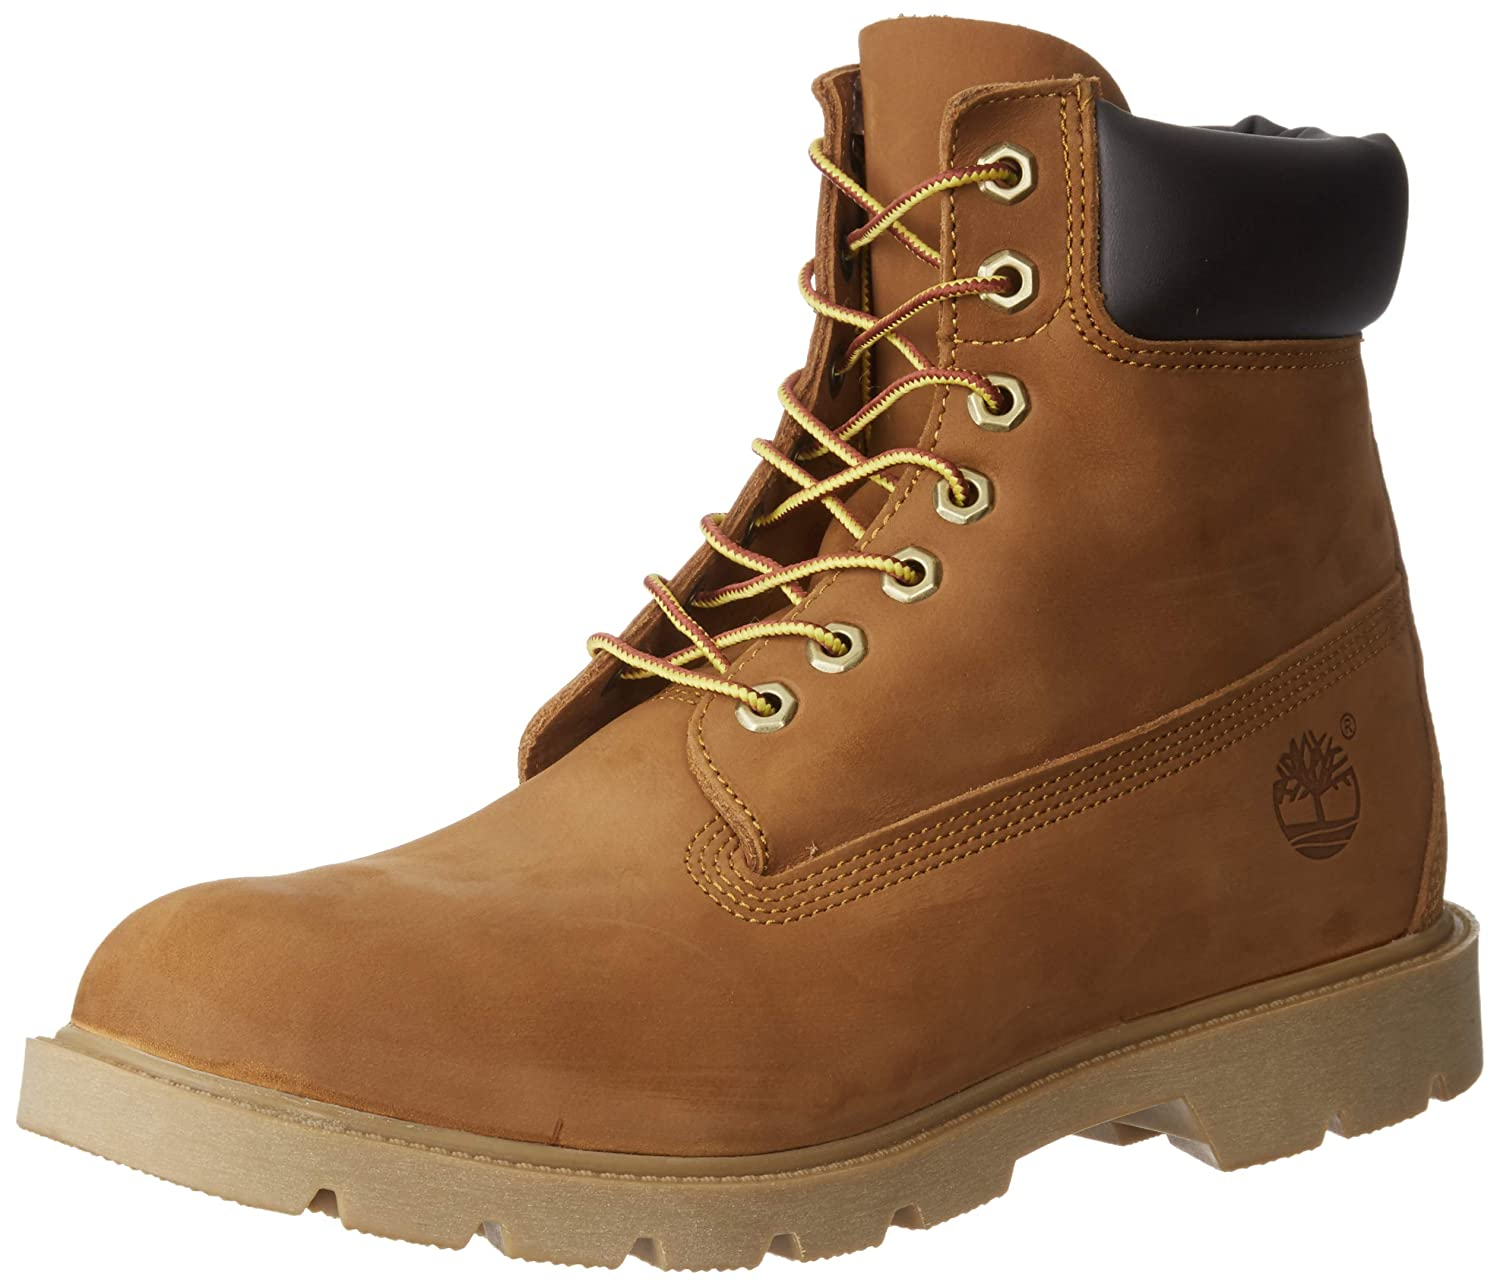 0f8f71a86b95 Amazon.com  Timberland Men s 6